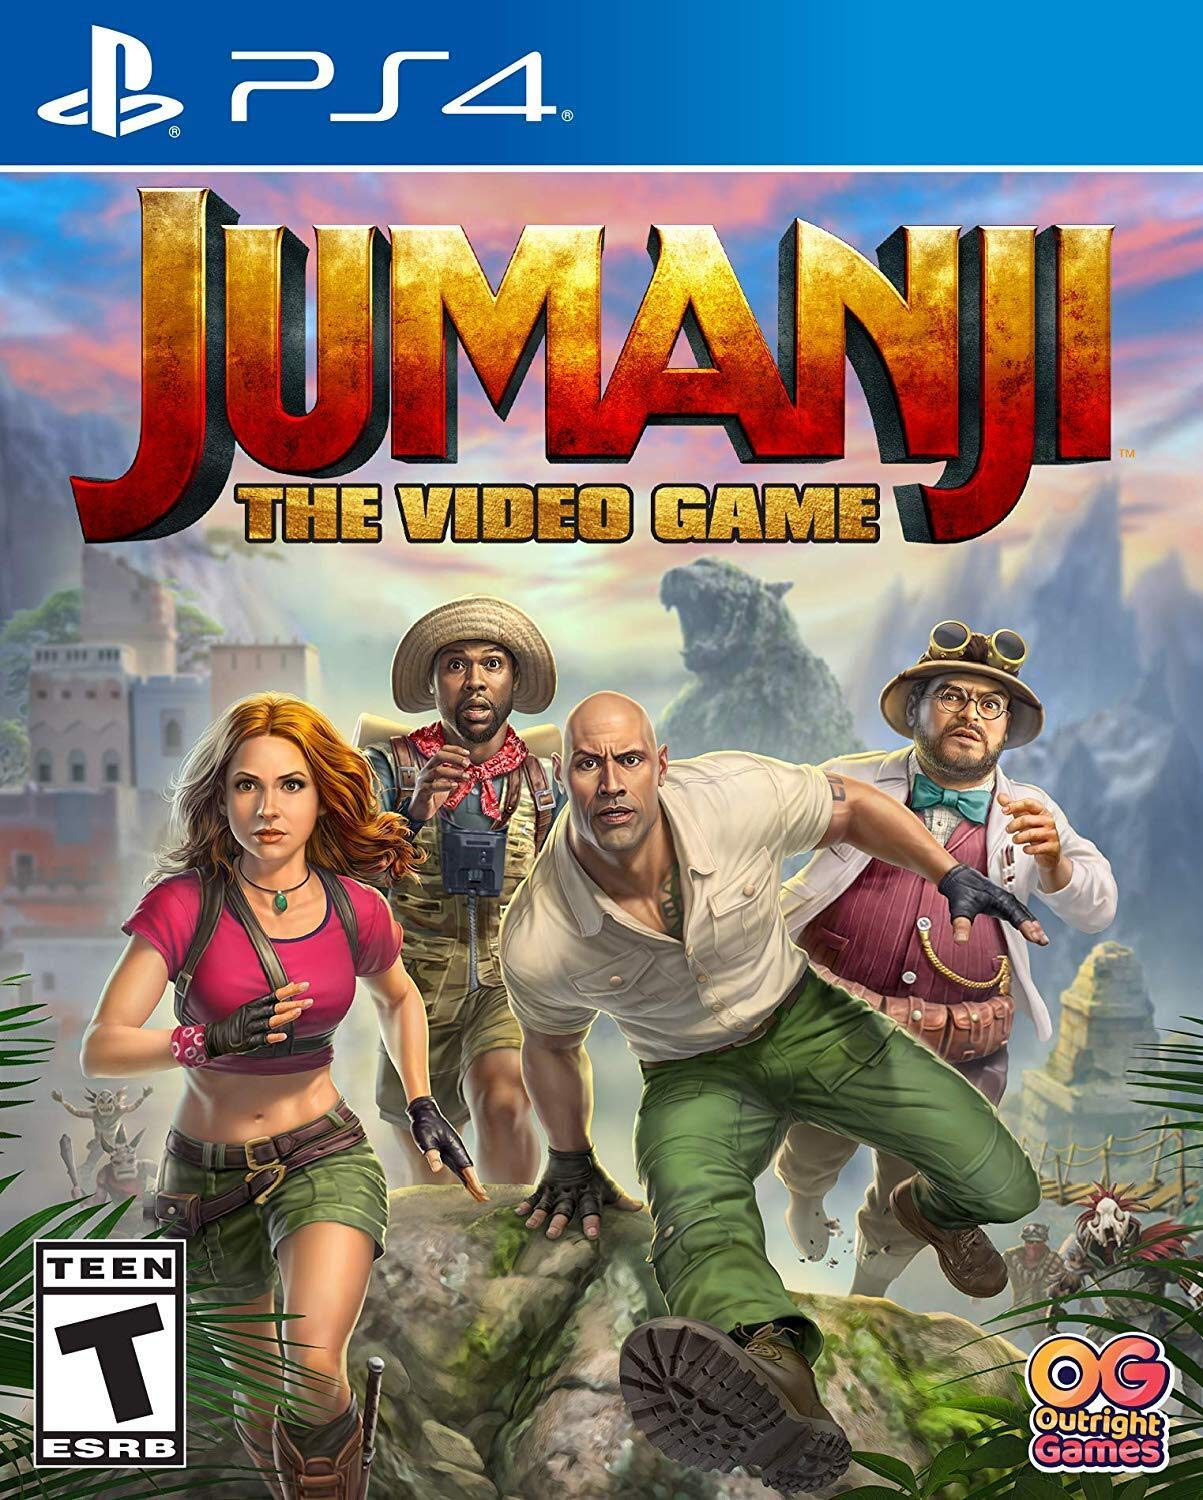 Jumanji: The Video Game for PlayStation 4 [USA]: Amazon.es: Bandai ...